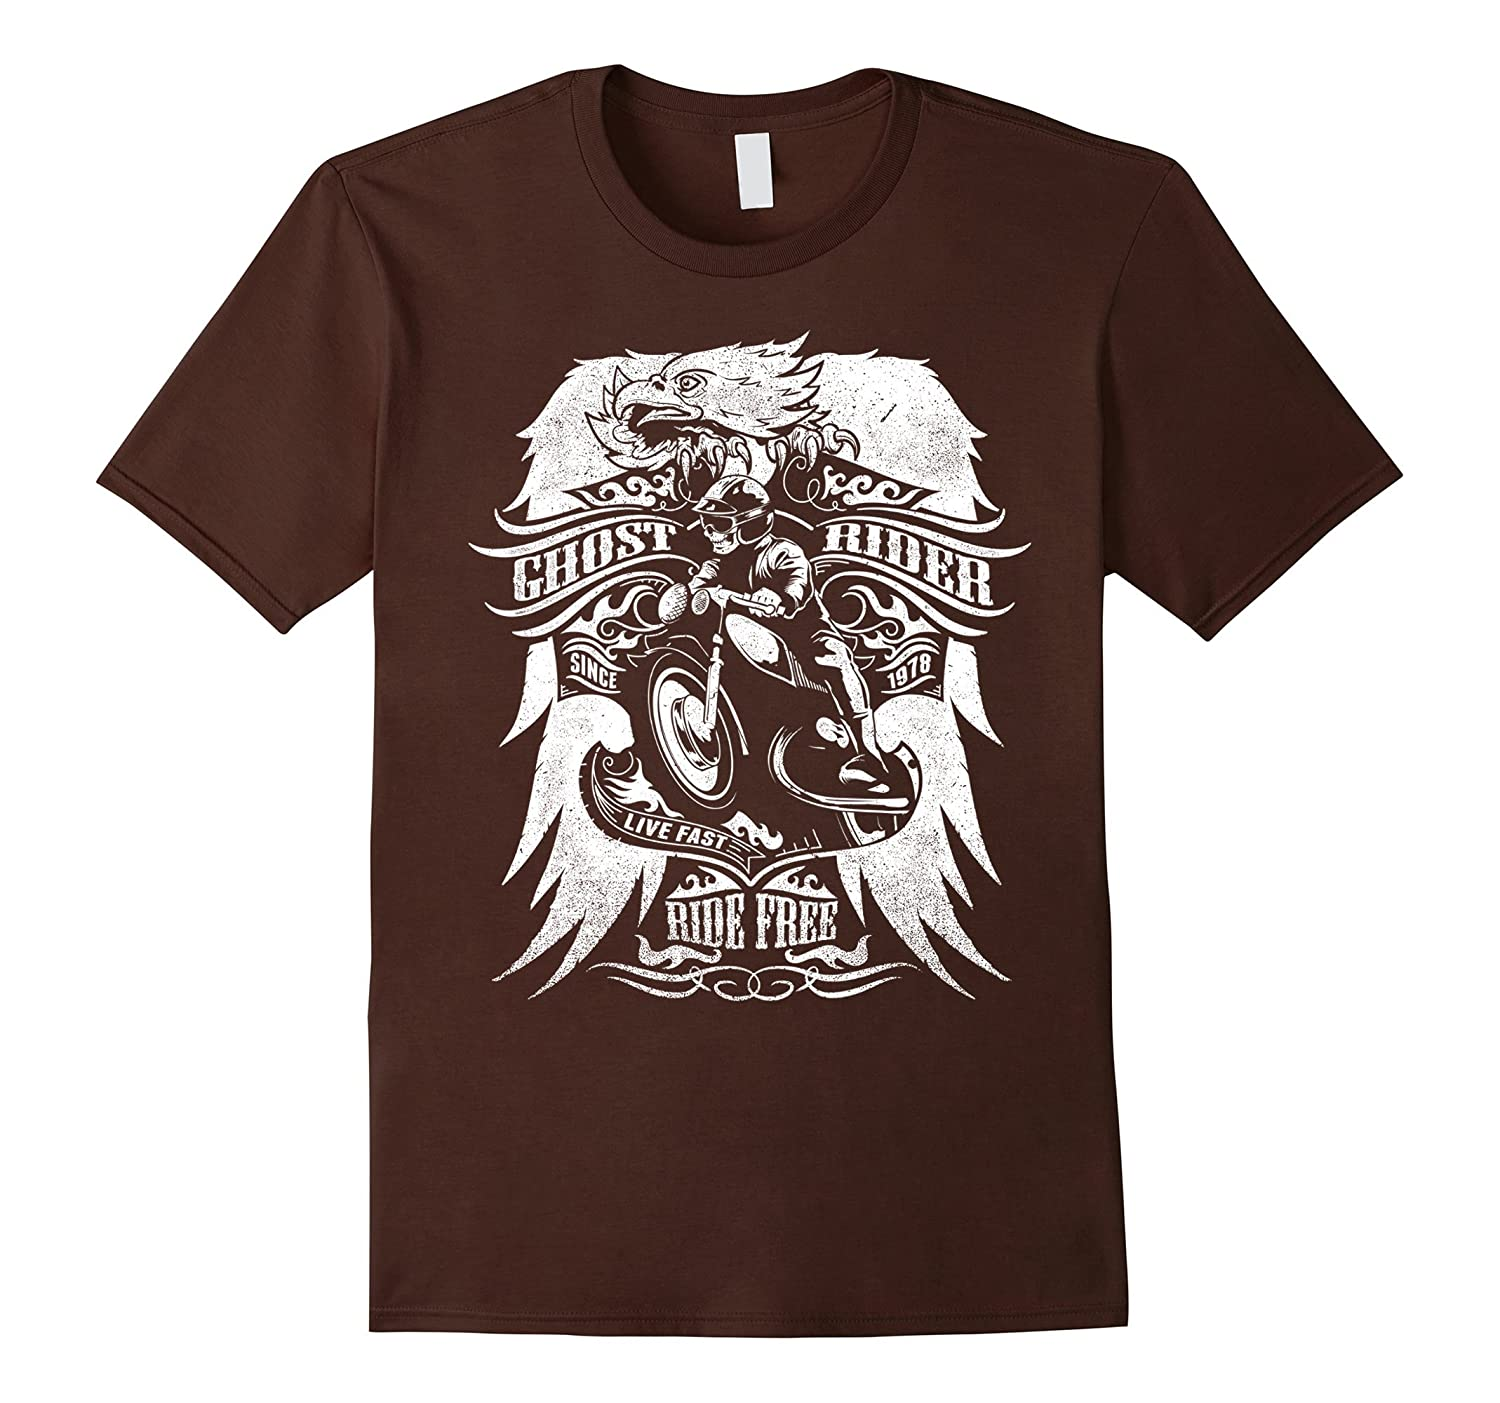 Ghost Vintage Rider Ride Free Motorcycle Tshirt Men Women-mt